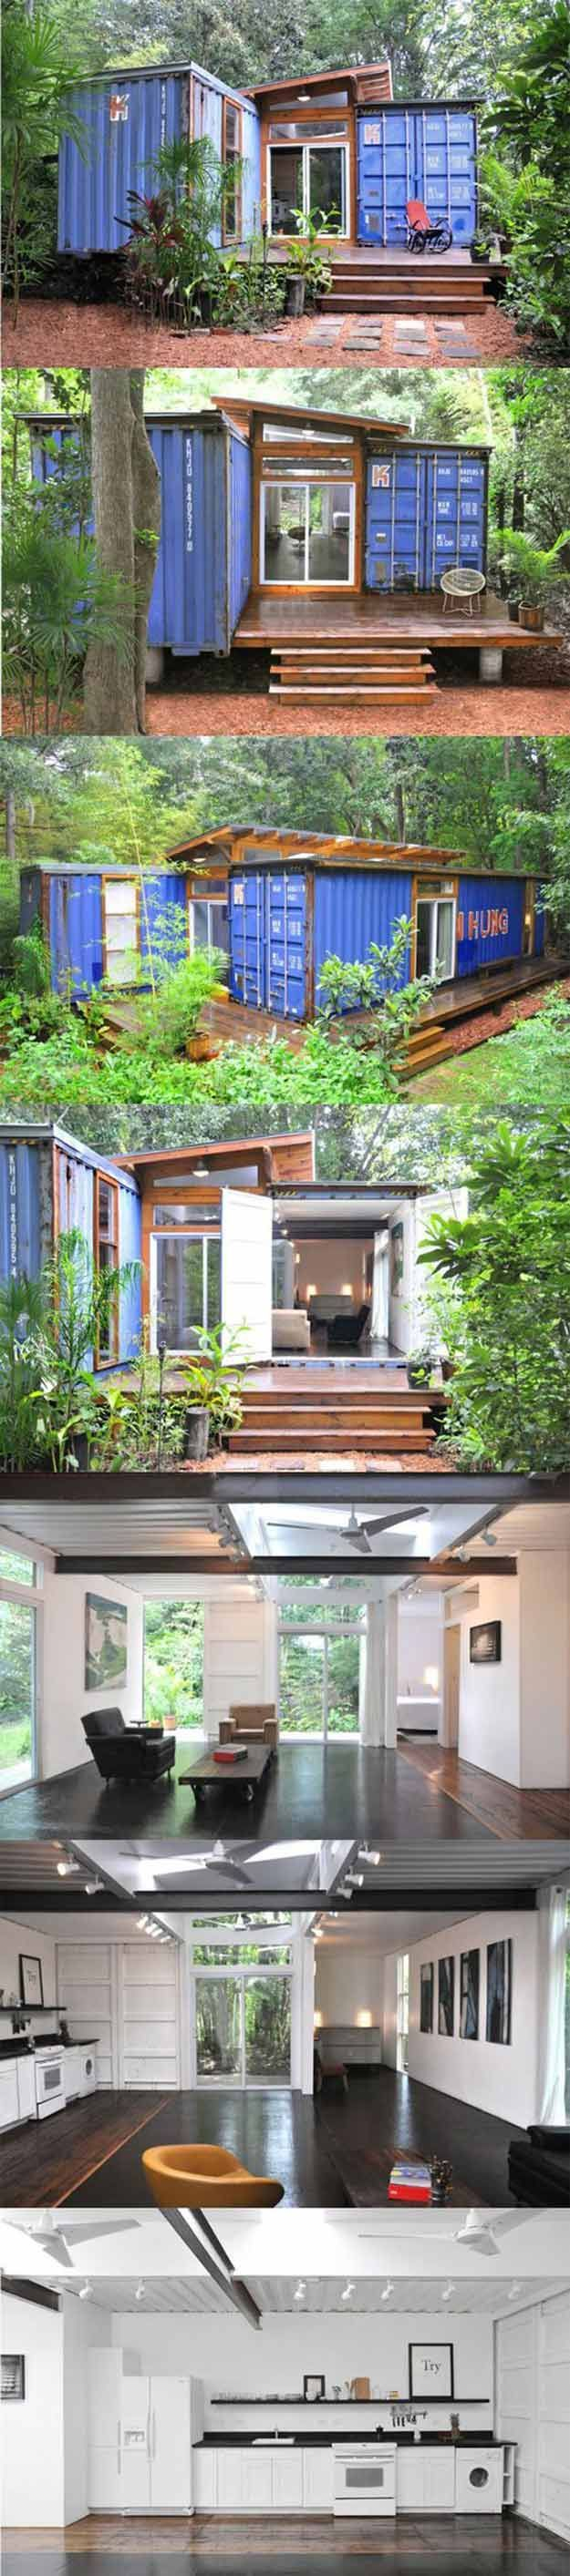 731 best O 21 House images on Pinterest | Small houses, House ...